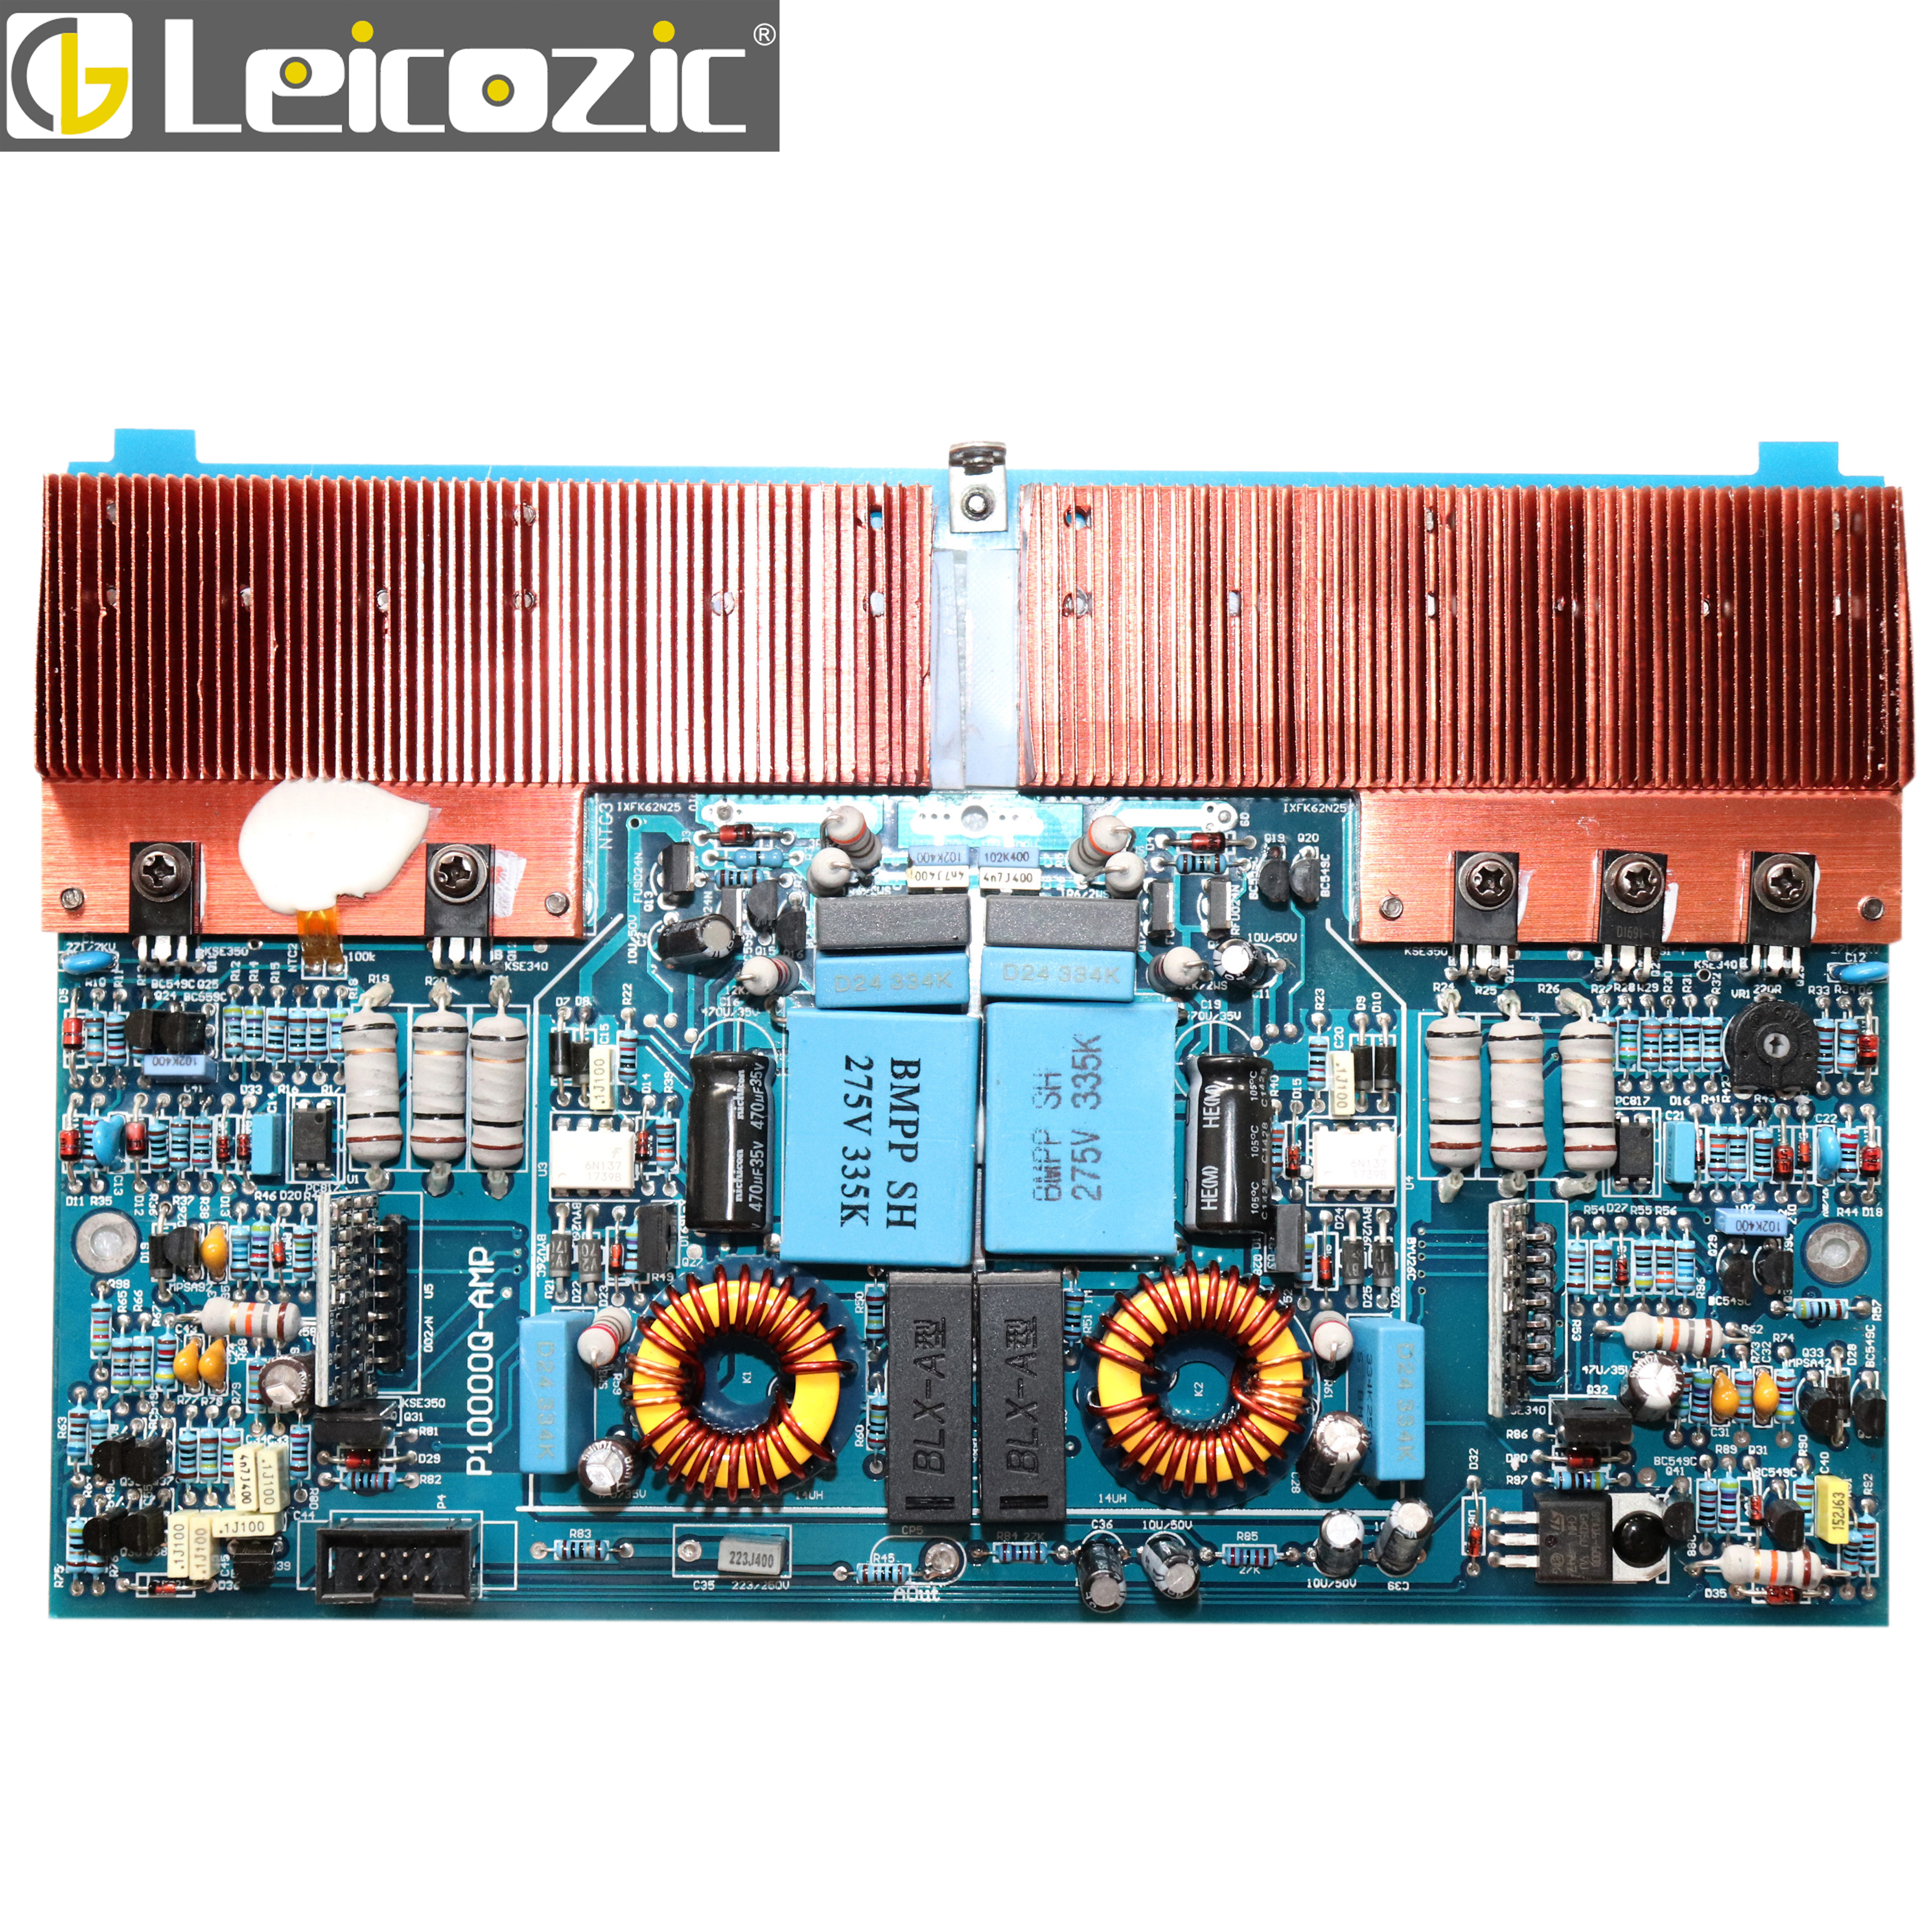 Leicozic Audio Amplifier Channel Card For 10000q Switching Channel Board Amplifier Audio Main Board 4 Channel Amplifiers 2500w*4